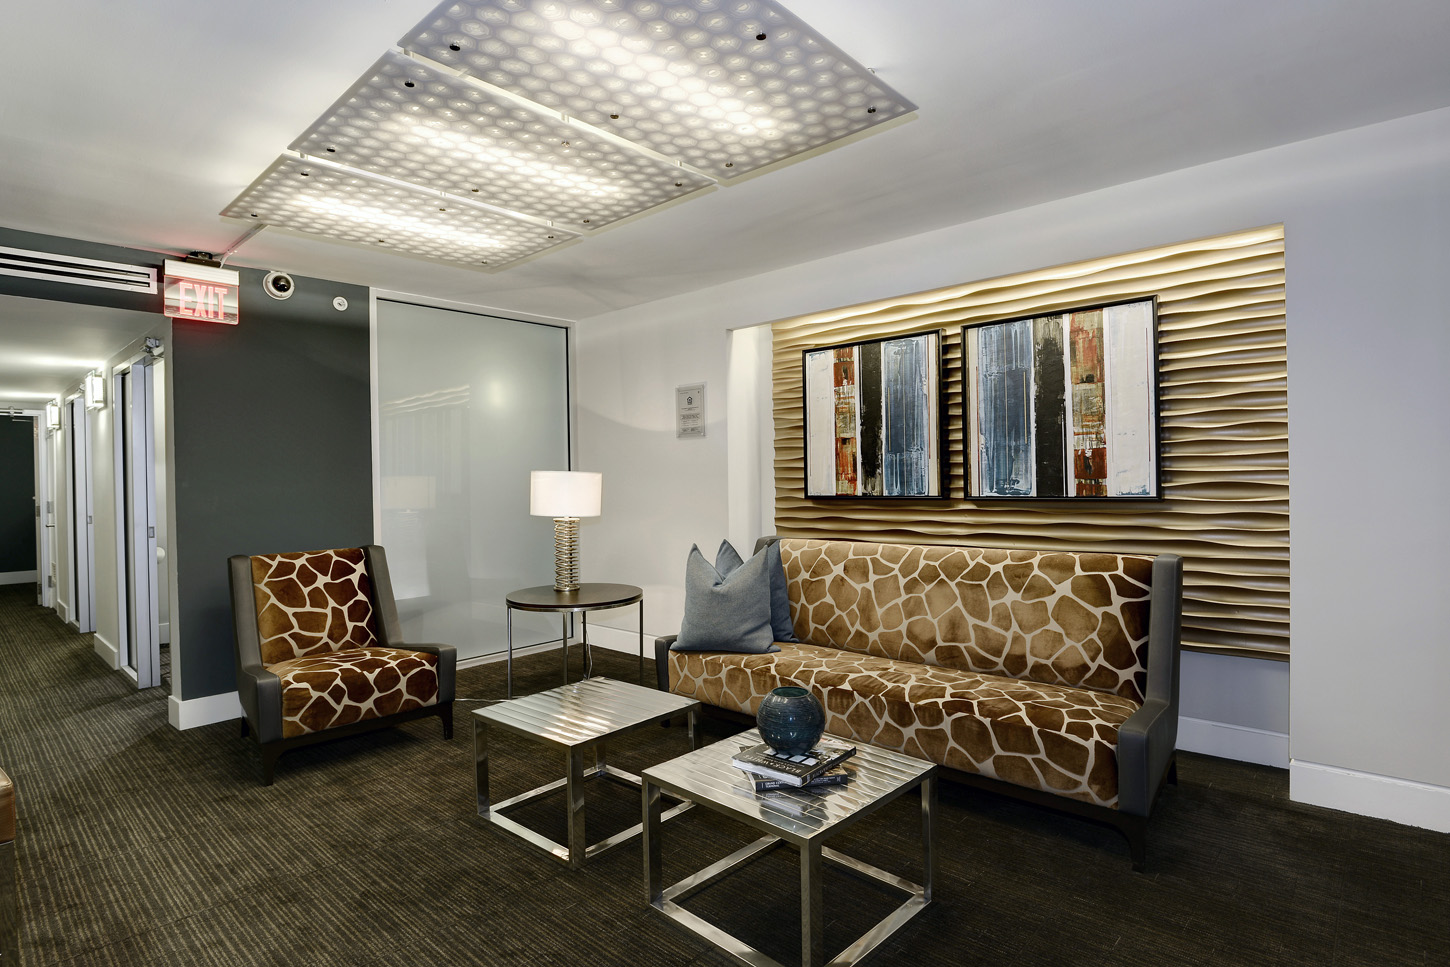 Clubroom hallway with graphic patterned sofa and chair, and entry to conference rooms to the left